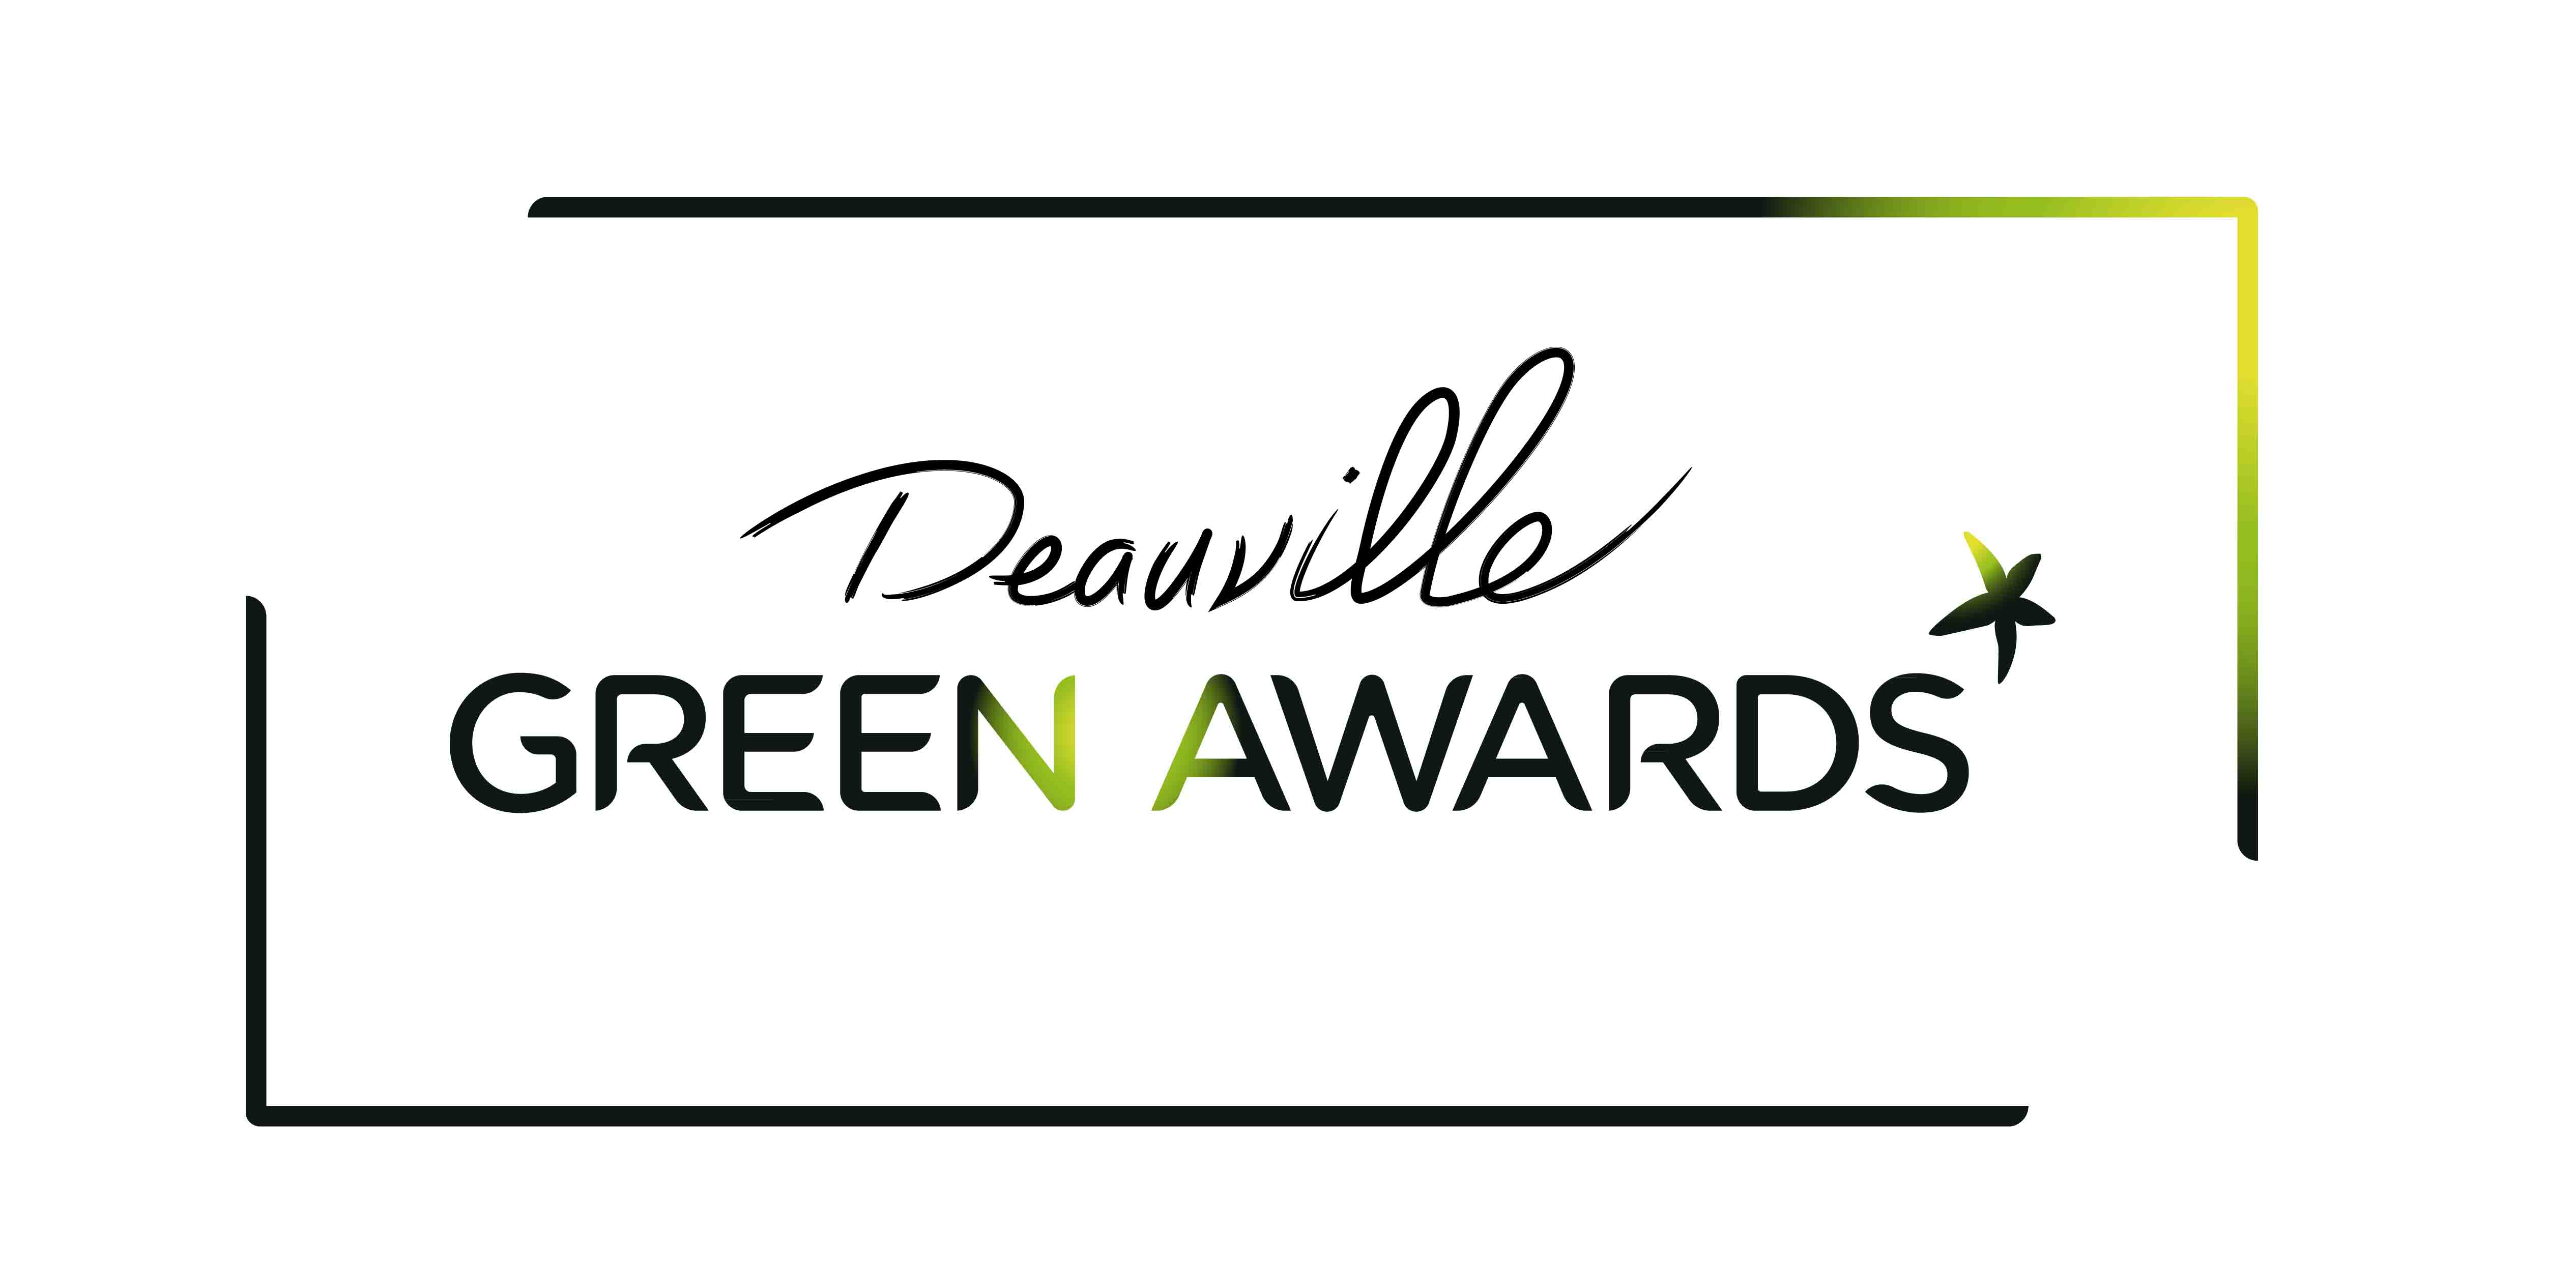 Deauville Green Awards 2019